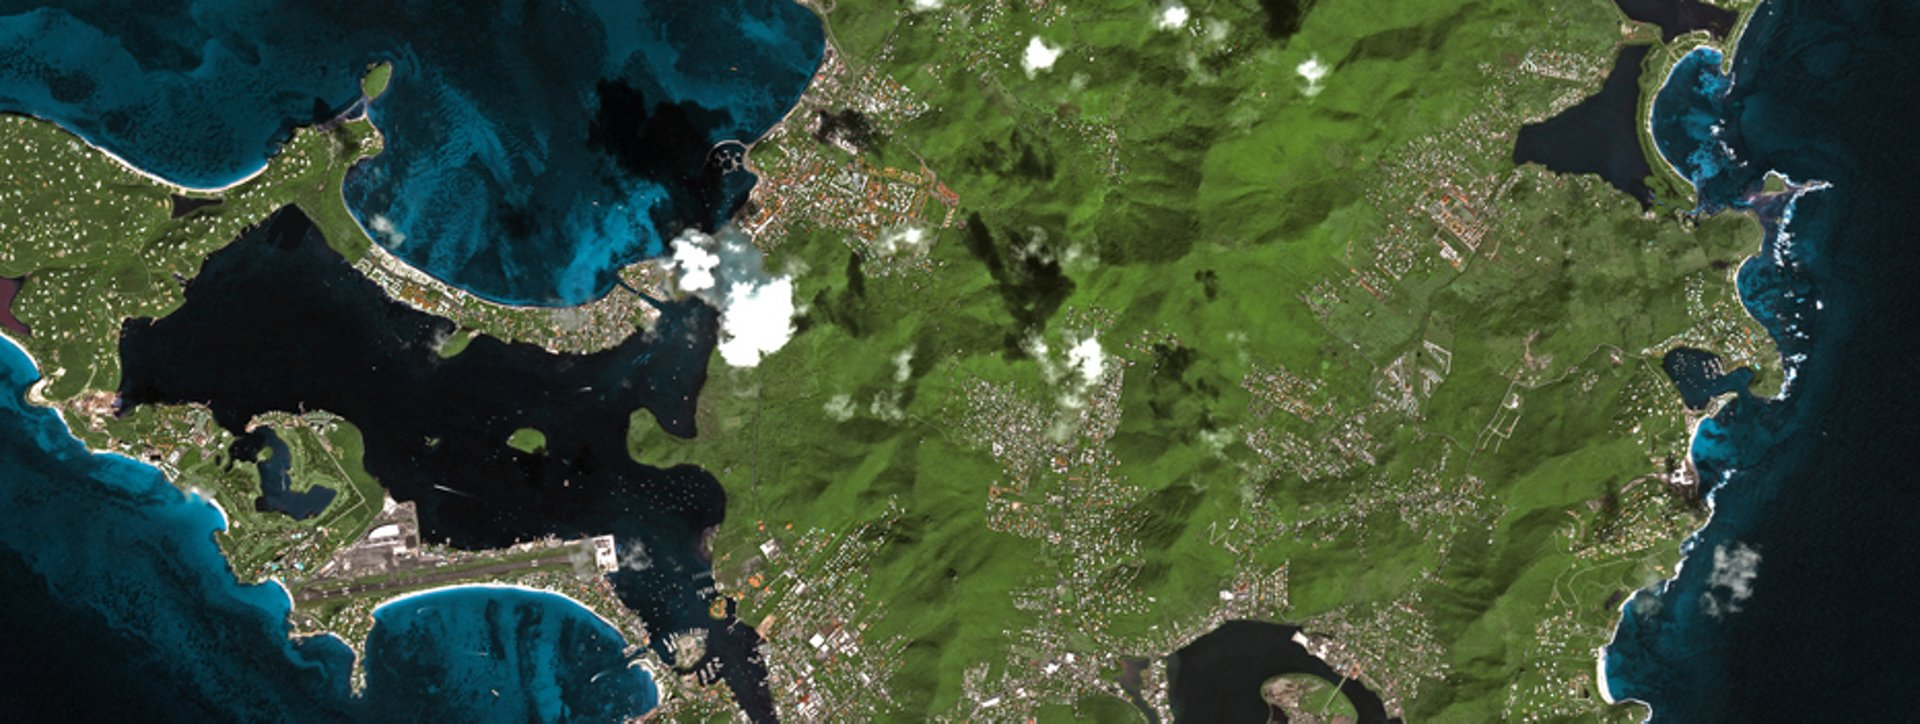 An example of Earth observation imagery from the Airbus-developed New AstroSat Optical Modular Instrument (NAOMI), which was included on the PerúSAT-1 satellite.